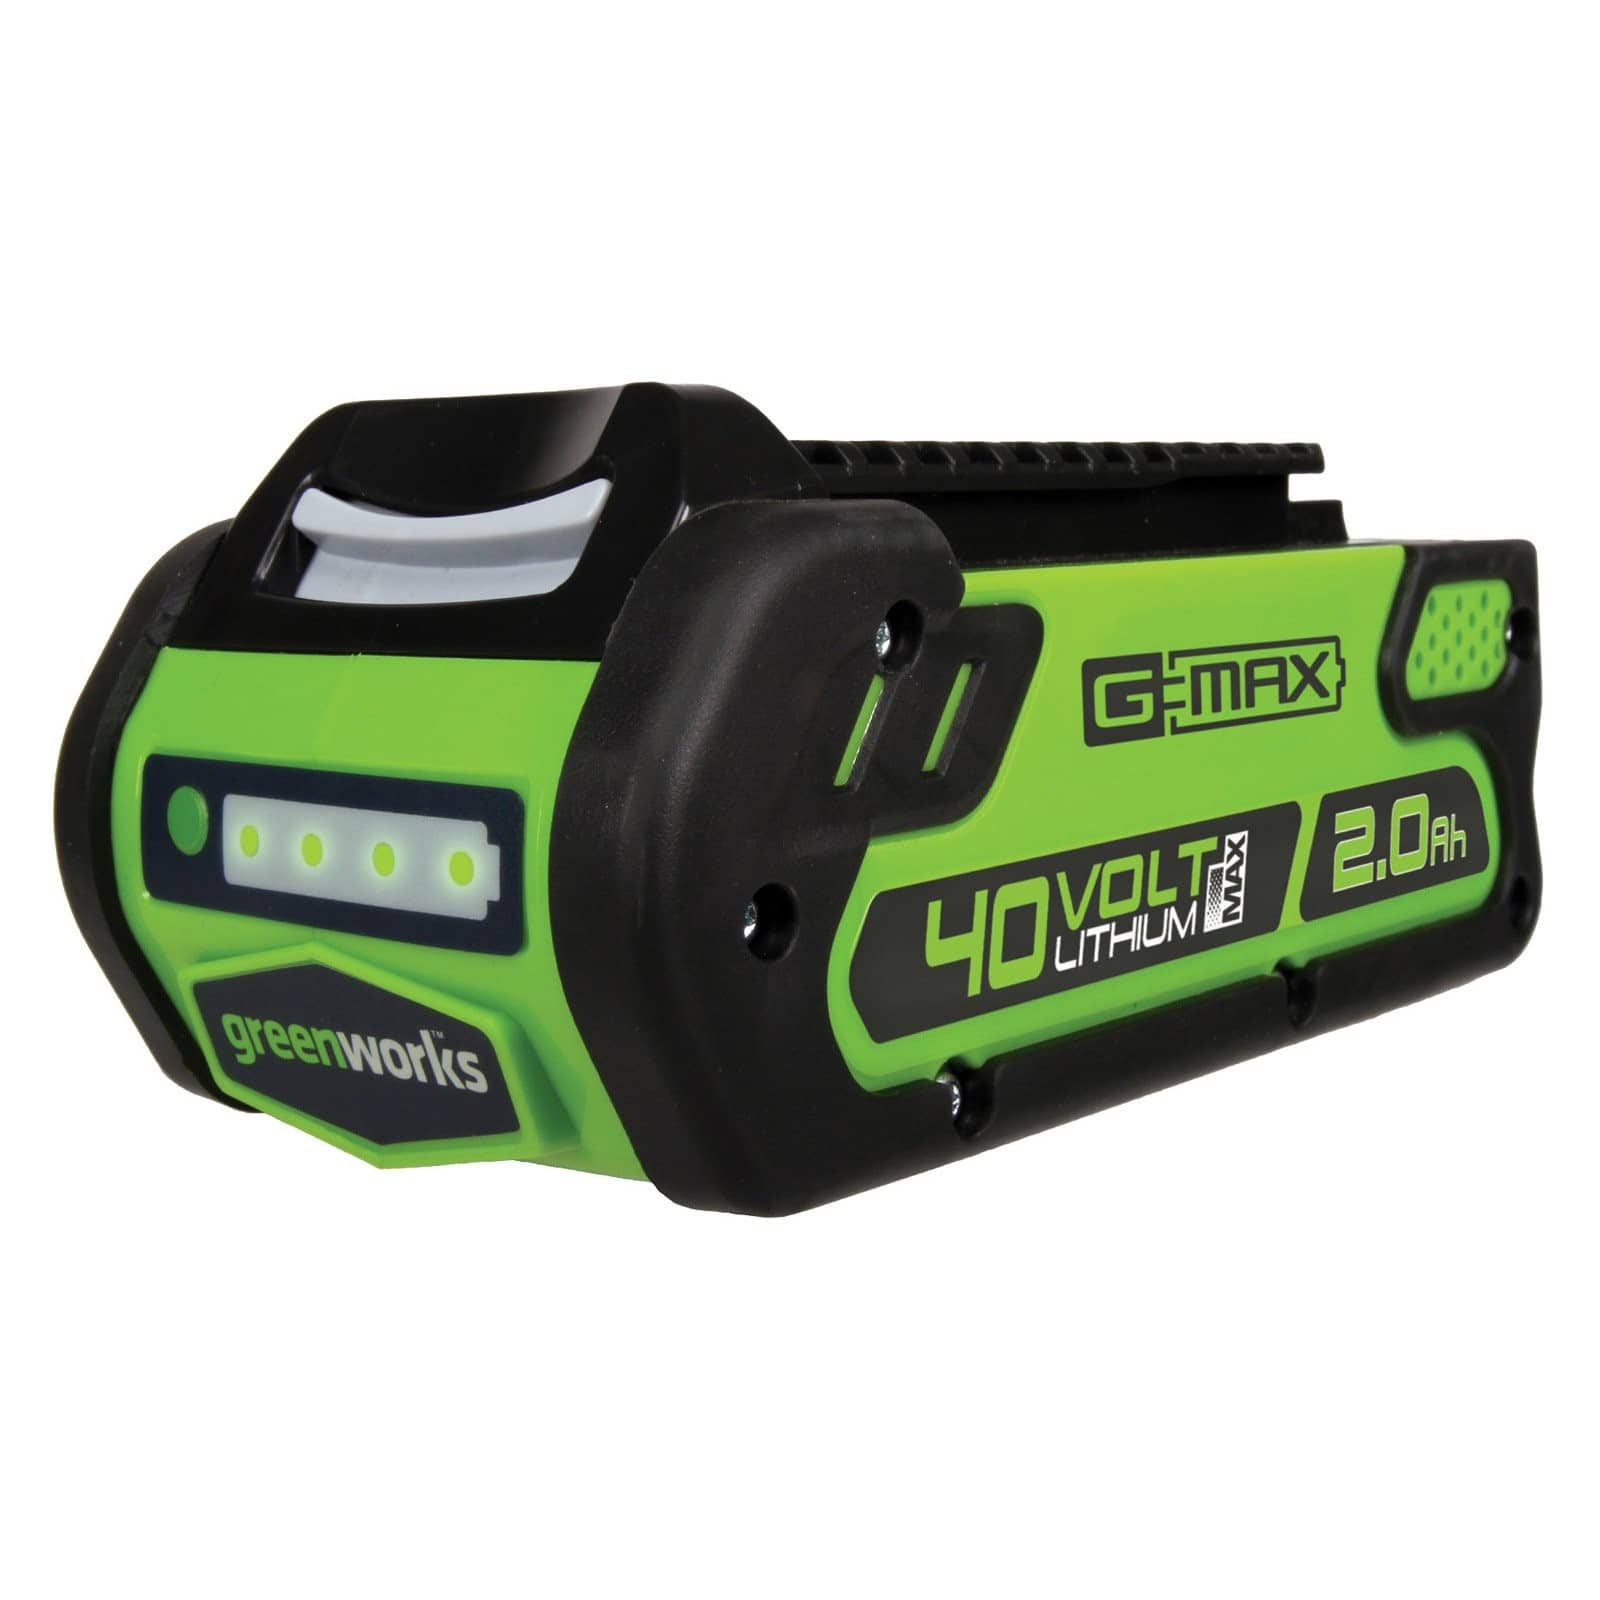 Greenworks Accessories/Tools: 40V 2.0 AH Lithium-Ion Battery $45, 40V 300W Cordless Power Inverter $30, 40V Lithium Ion Battery Charger $23 & More via Amazon